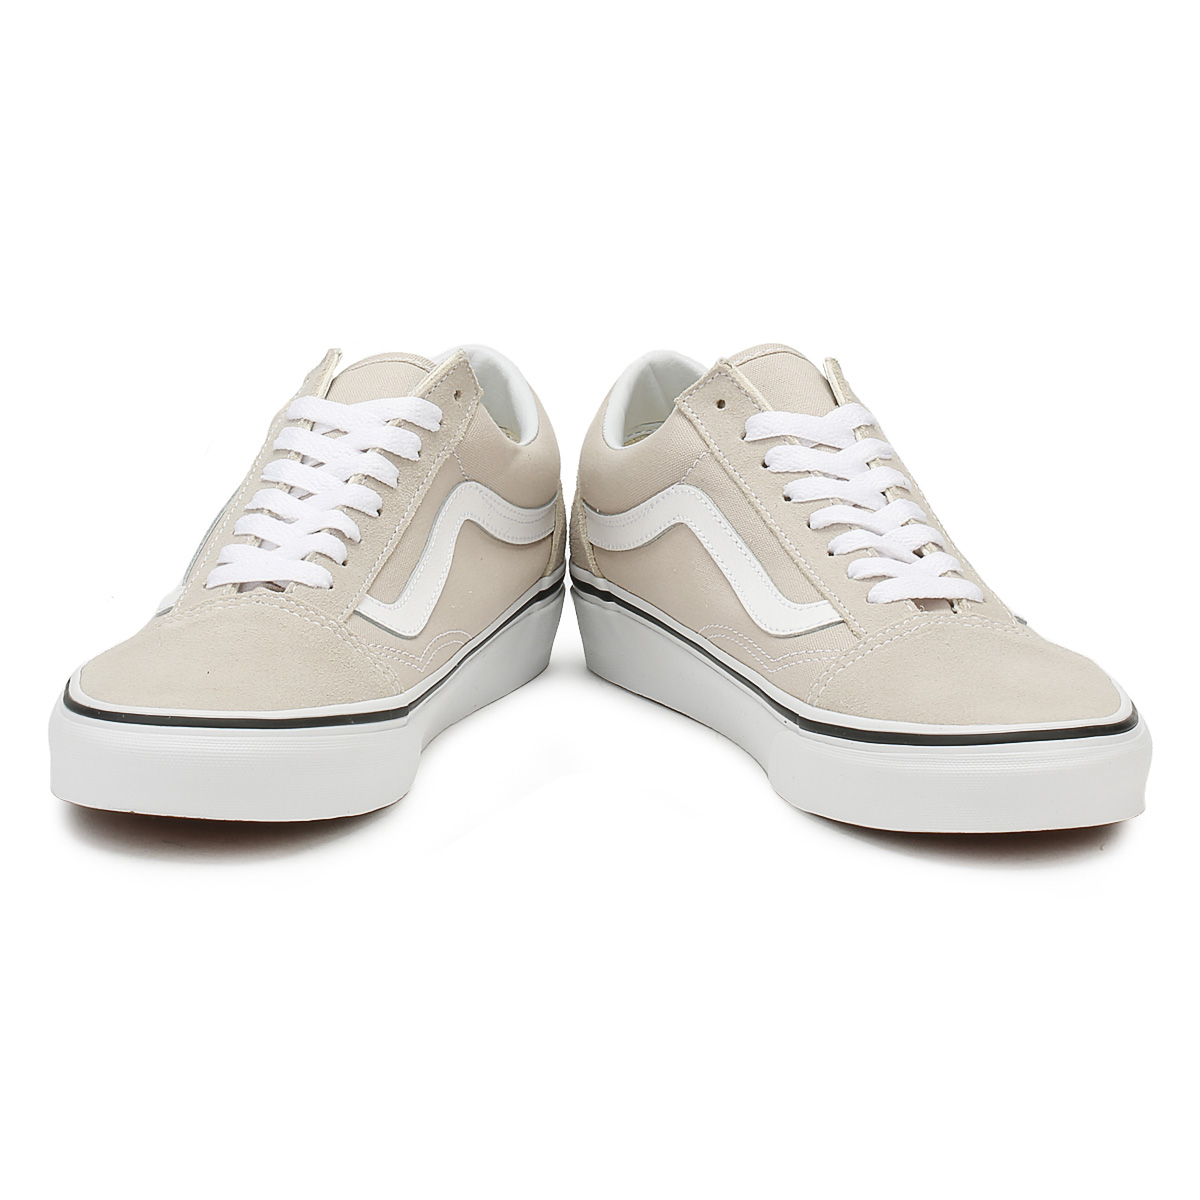 Vans Unisex Silver Lining & True White Old Skool Trainers Lace Up Skate Shoes